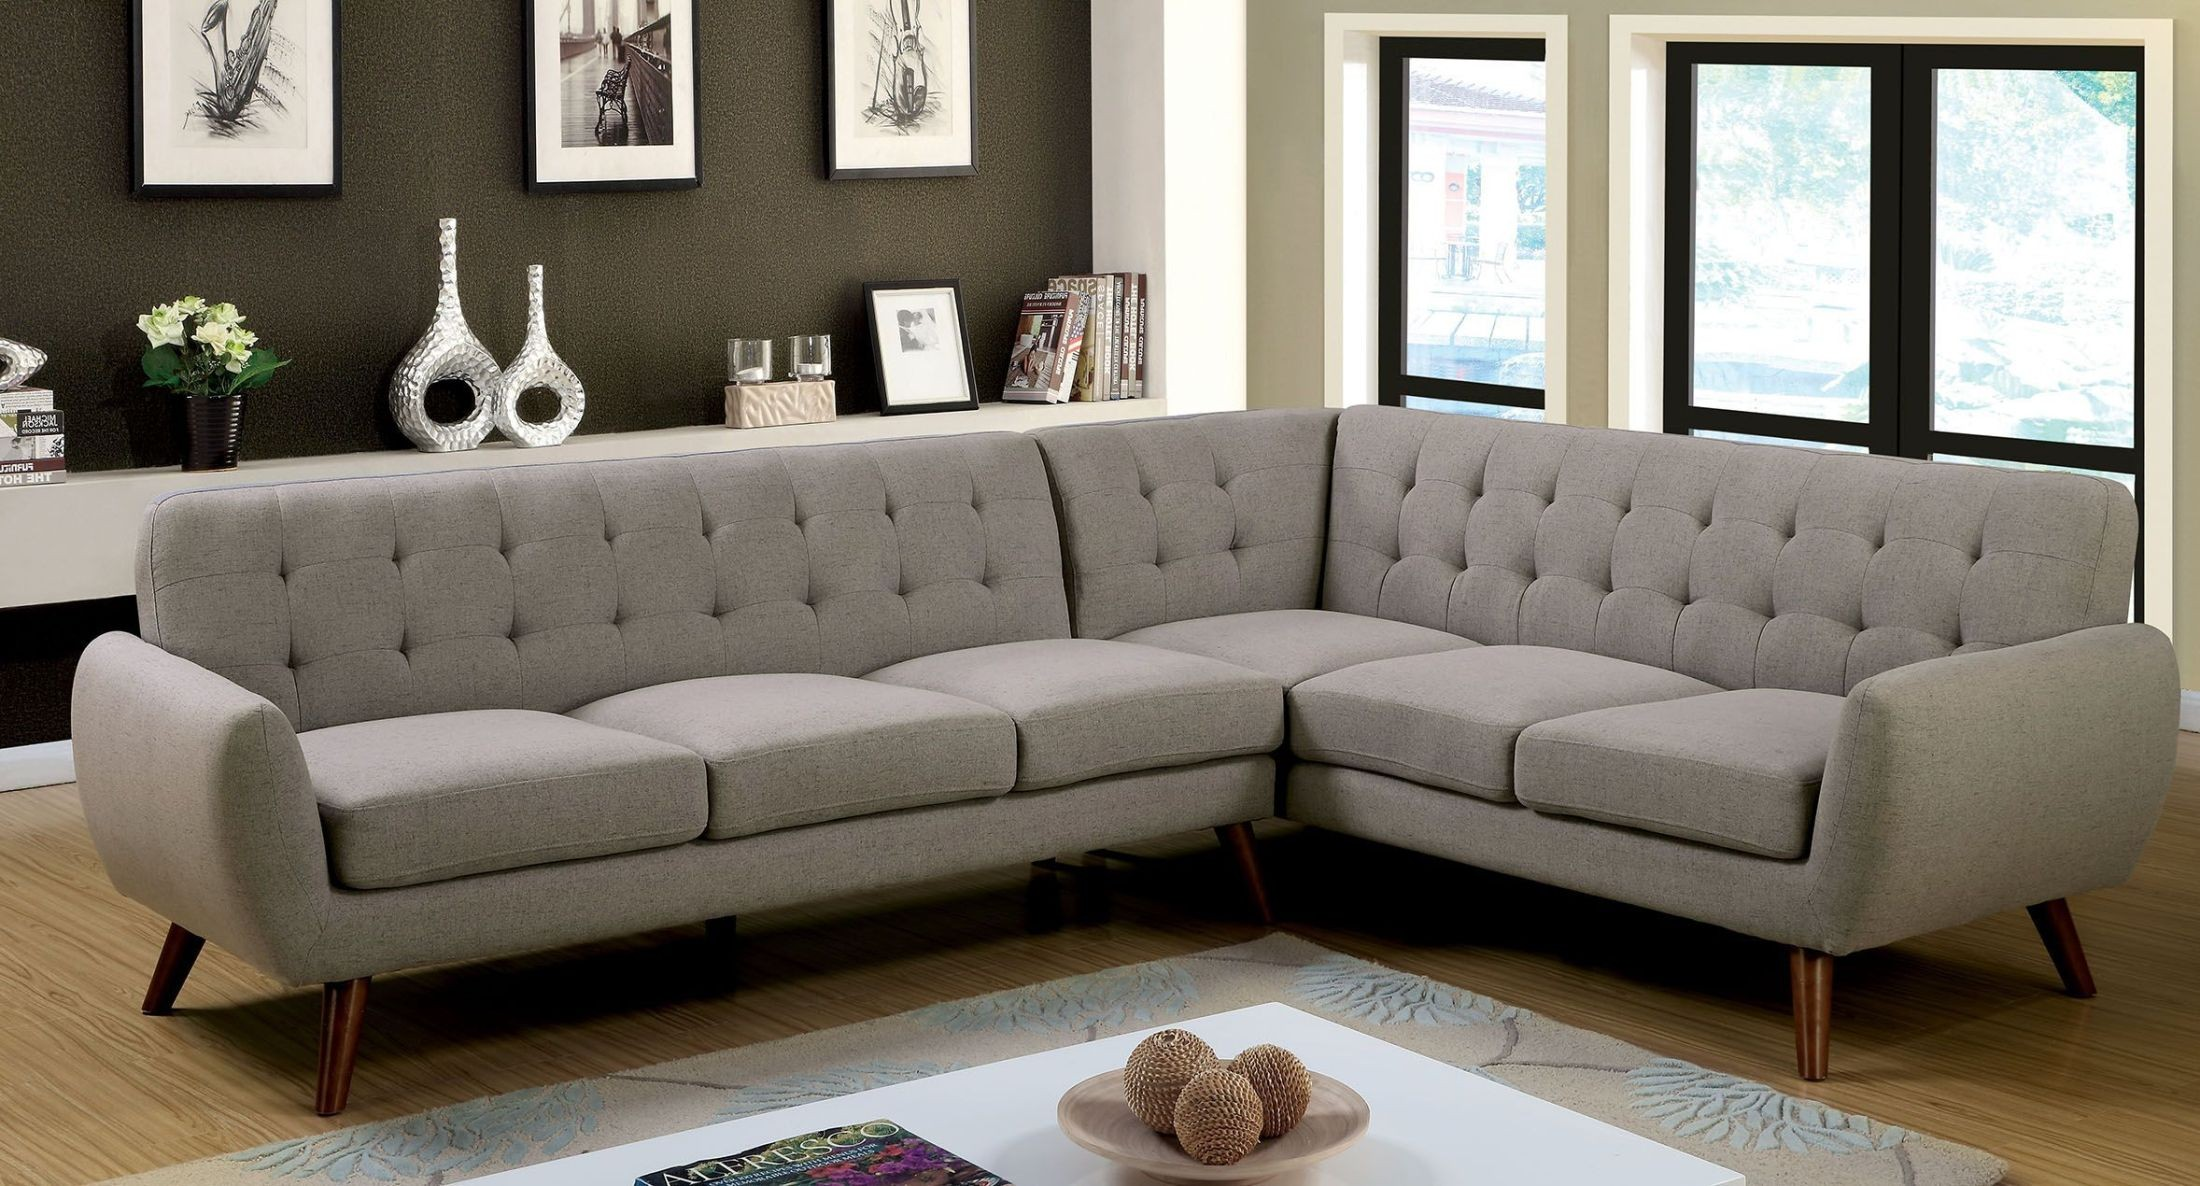 Estee Gray Sectional from Furniture of America